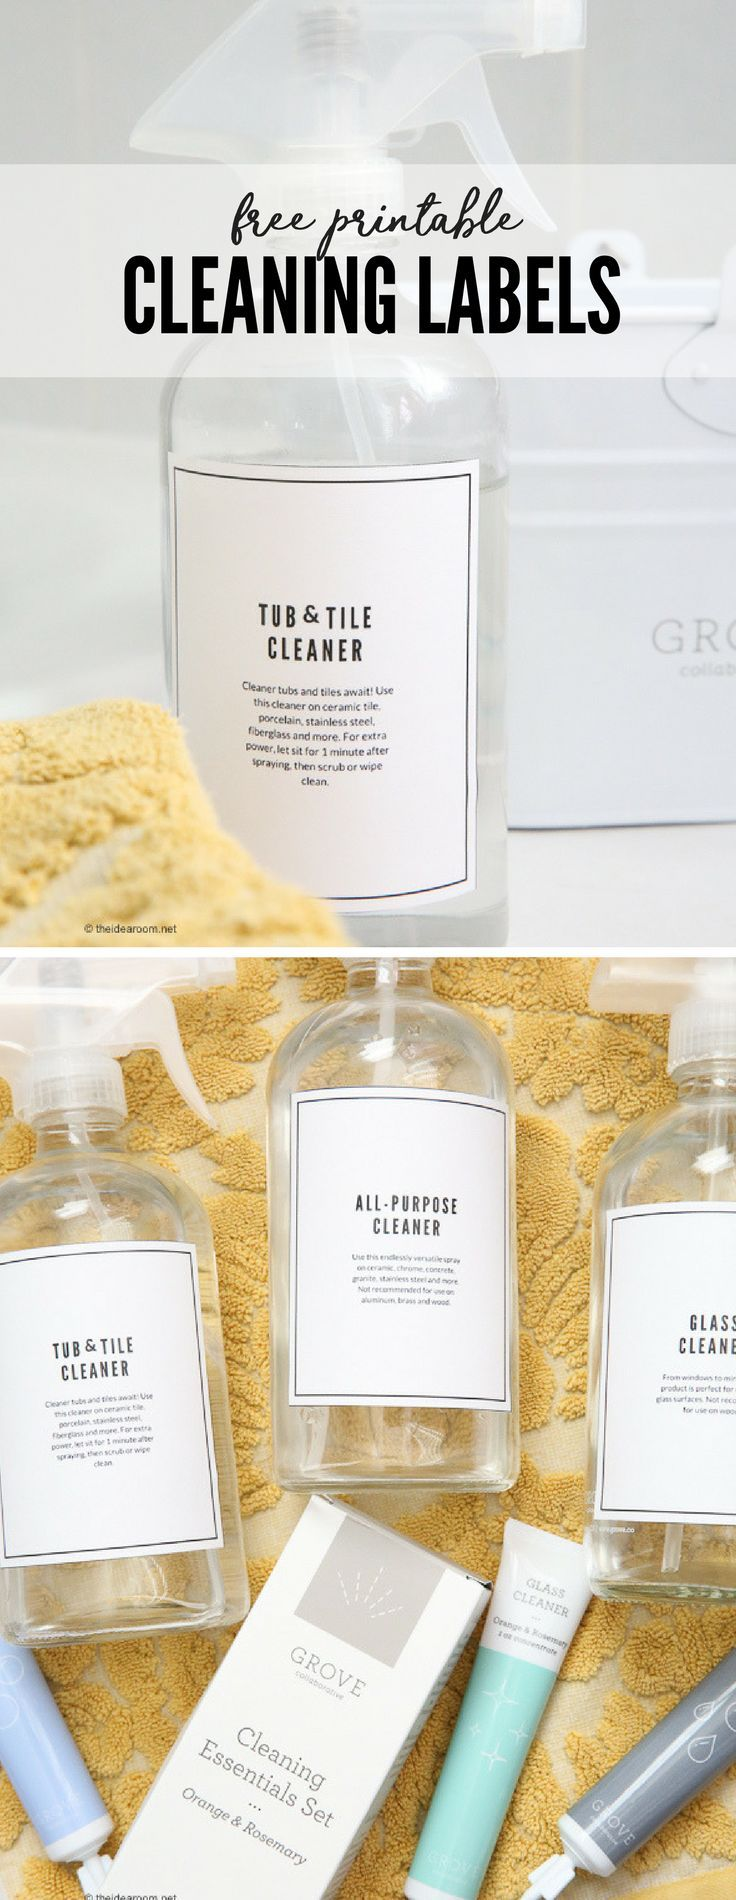 Printables | Free Printables | Cleaning Ideas | Download and Print these Free Printable Cleaning Solutions Labels to help get you more organized and maybe excited to get cleaning.